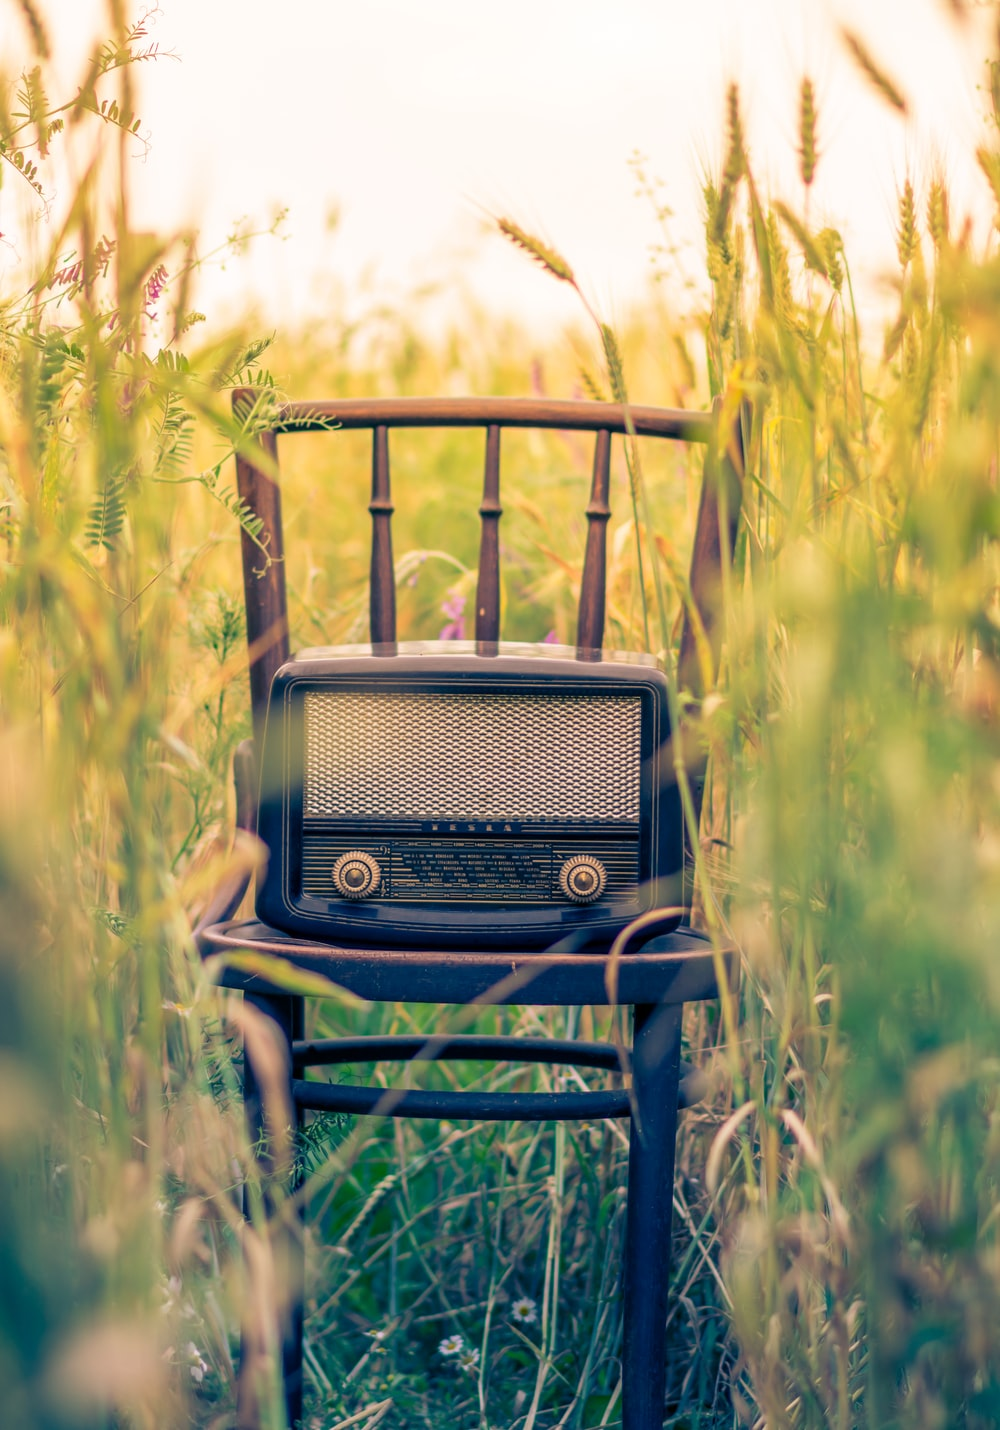 black transistor radio in the middle of the field